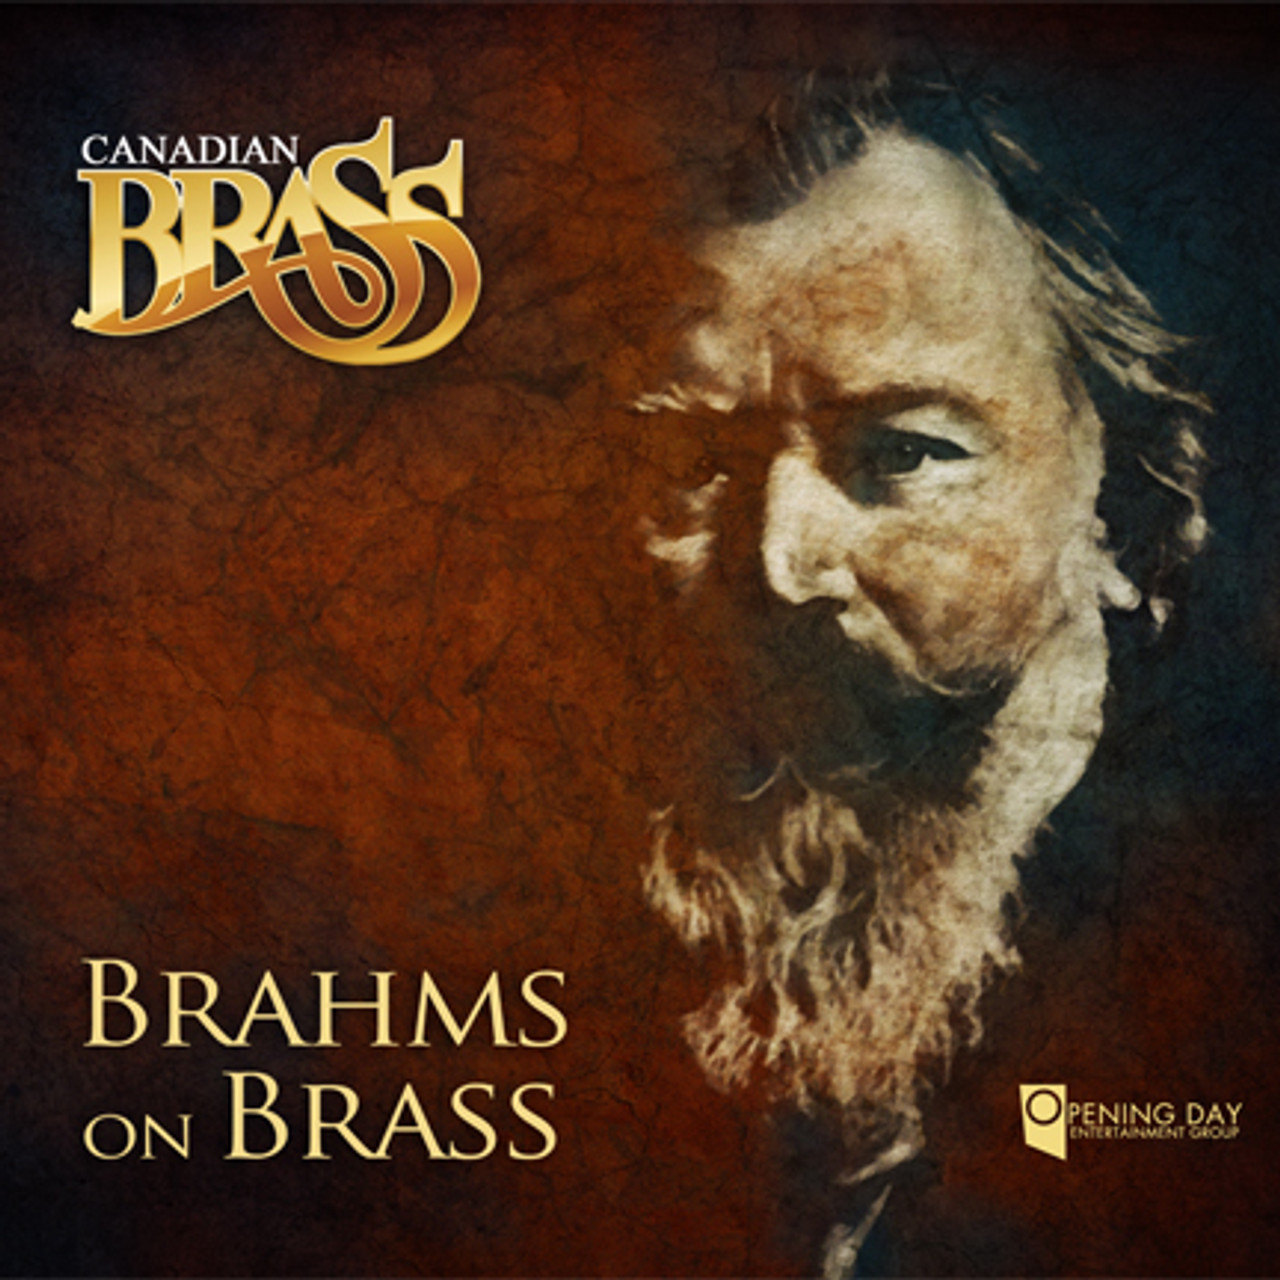 brass band music free download mp3